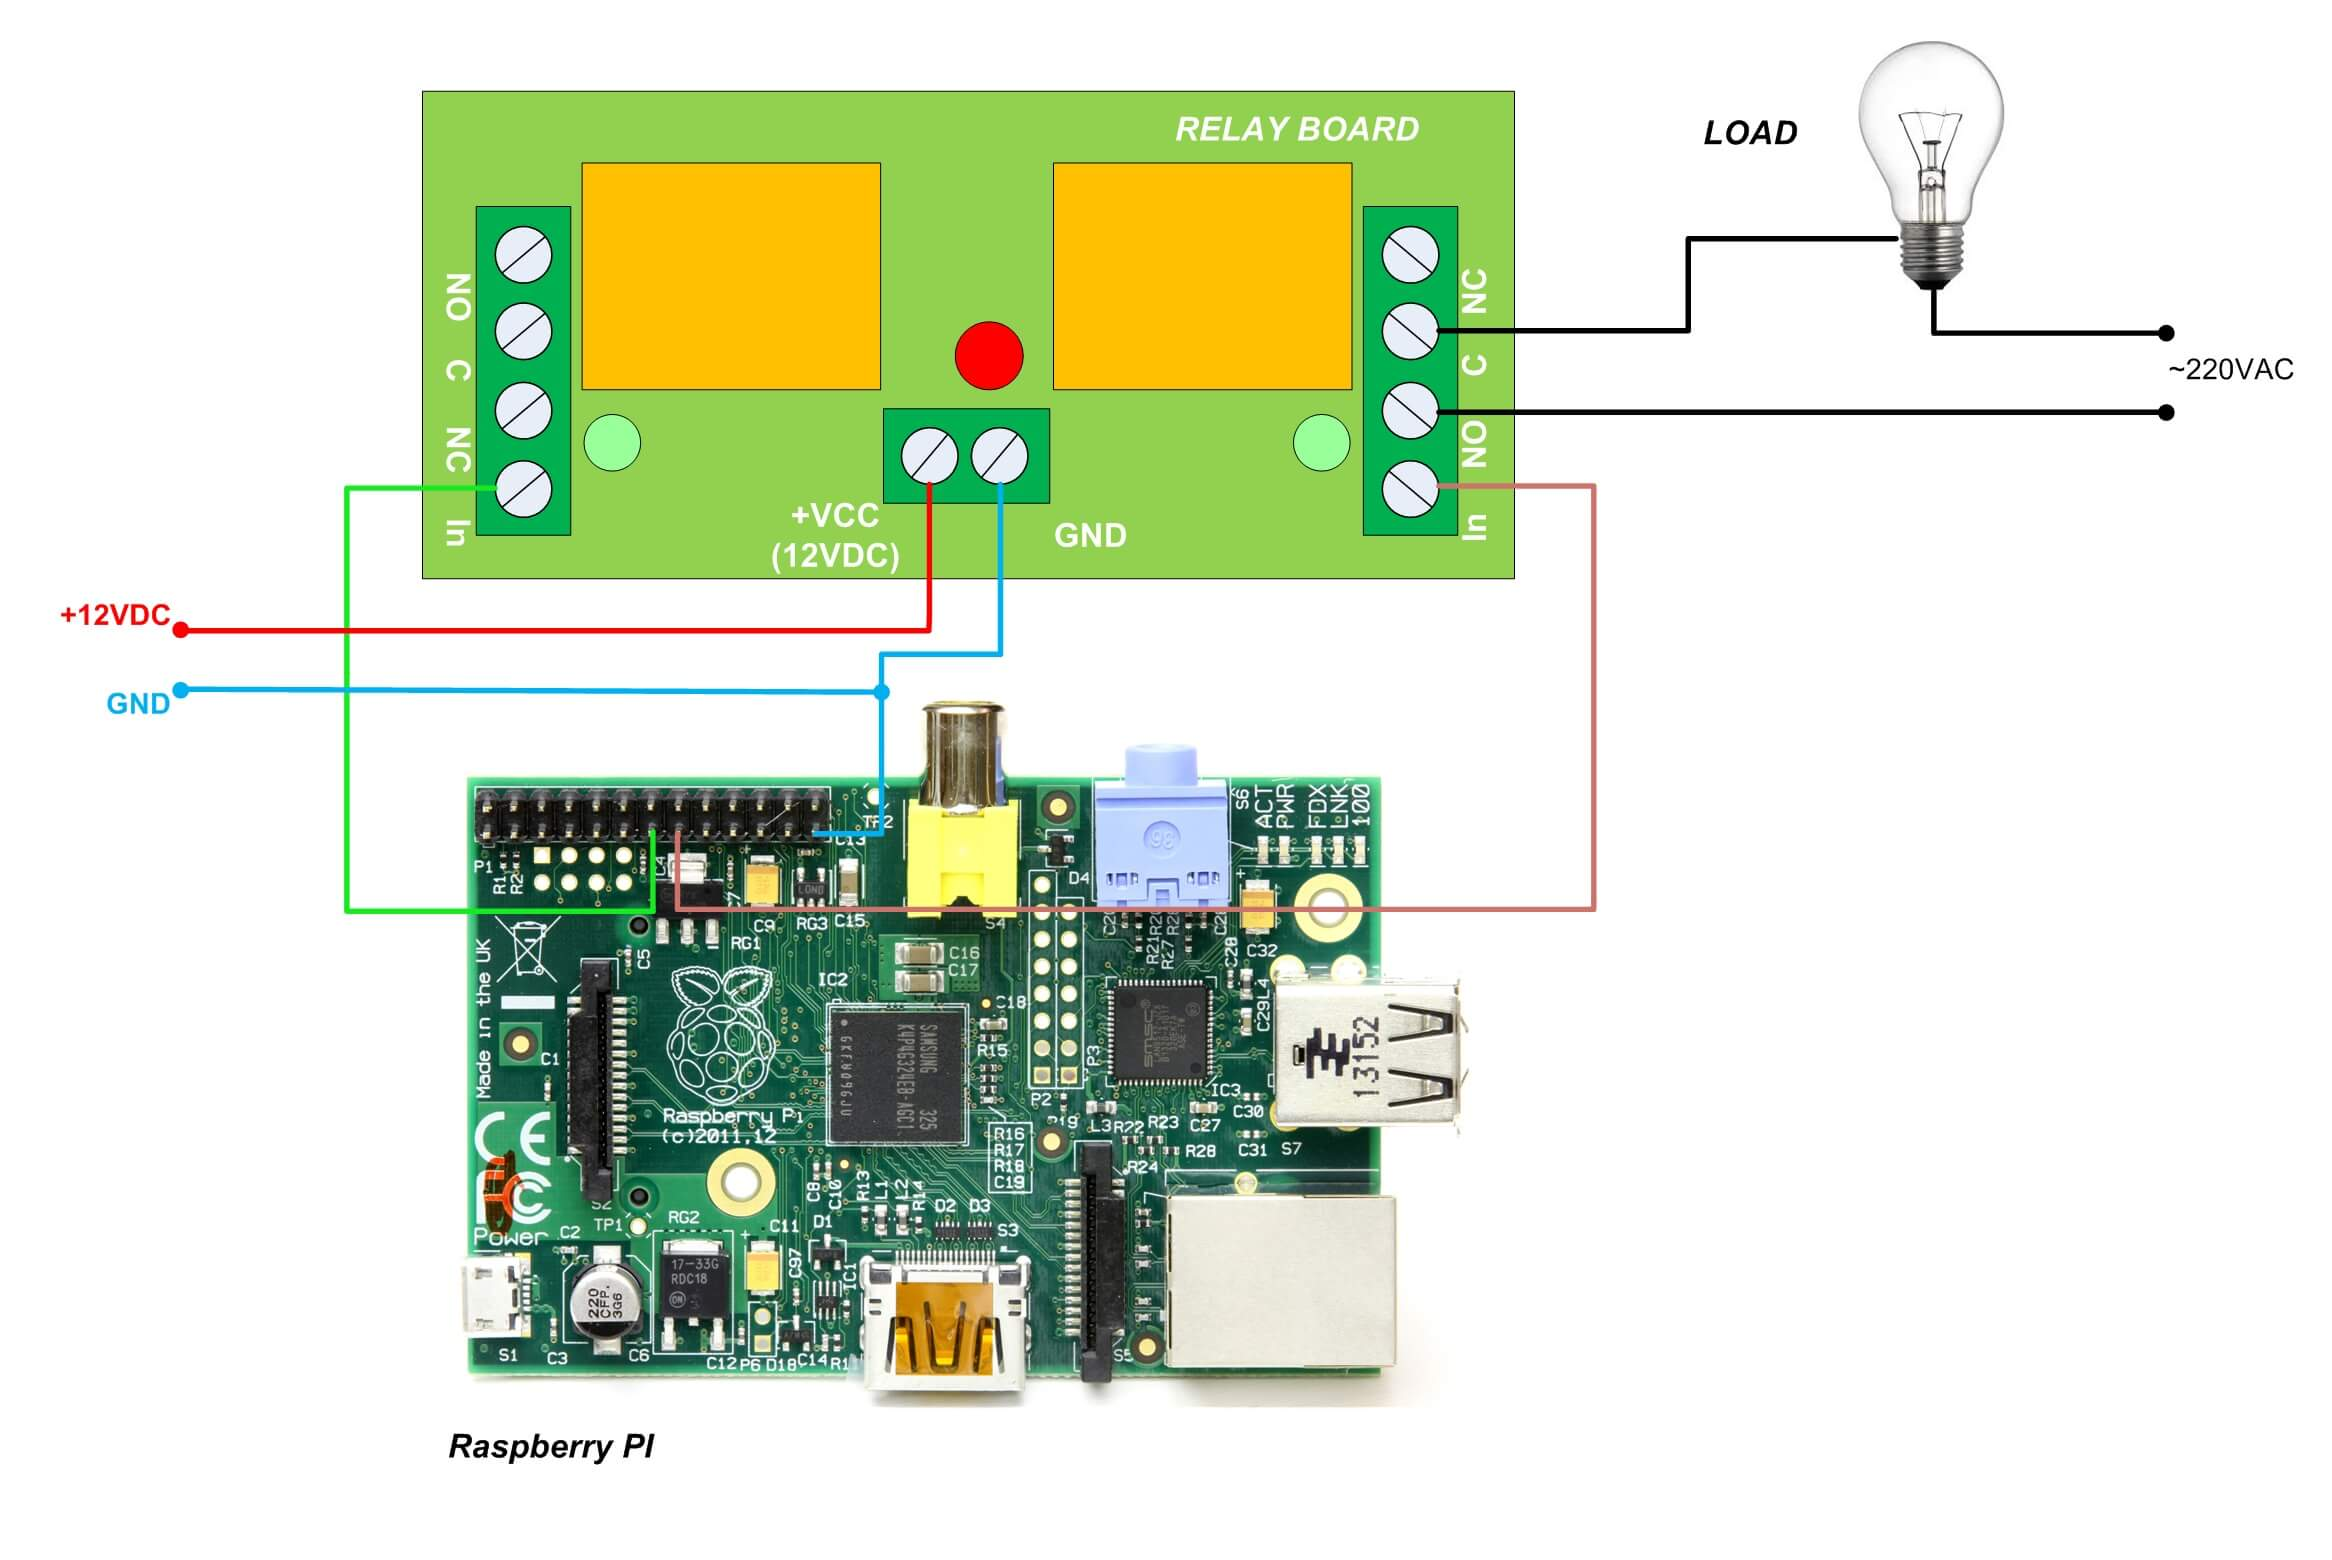 Relay Board 12v 10 Channels For Raspberry Pi Arduinopicavr Led Wiring Diagram Connected To